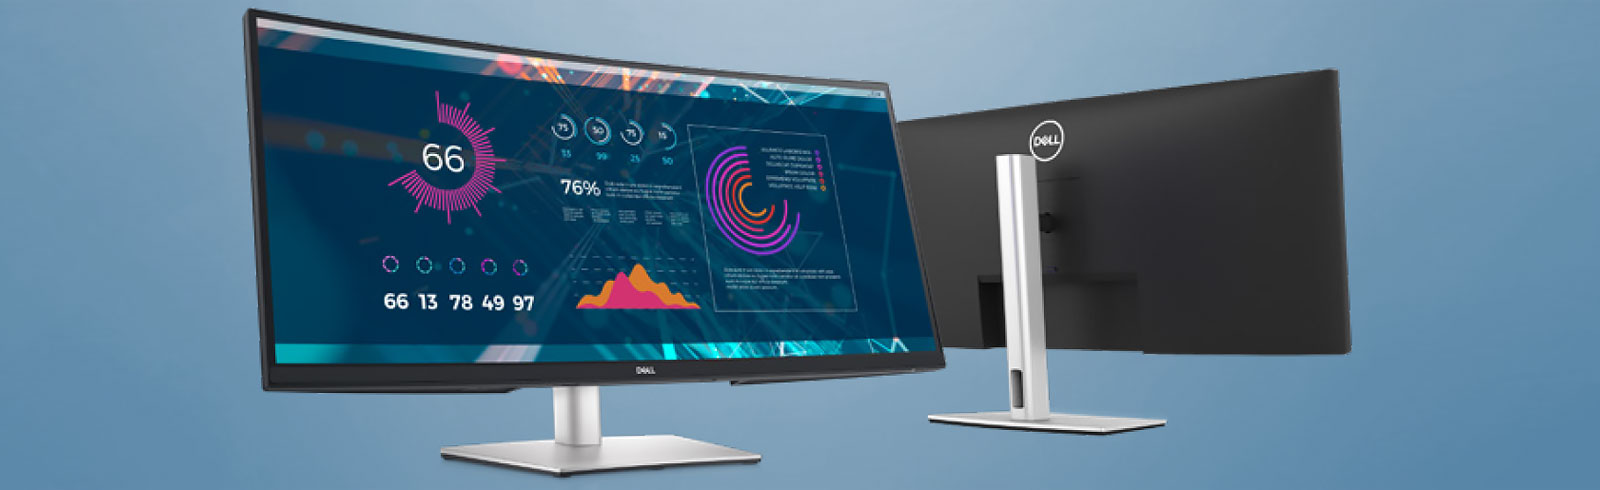 """The Dell P3421W goes official with a 34"""" IPS display and a 3800R curve"""